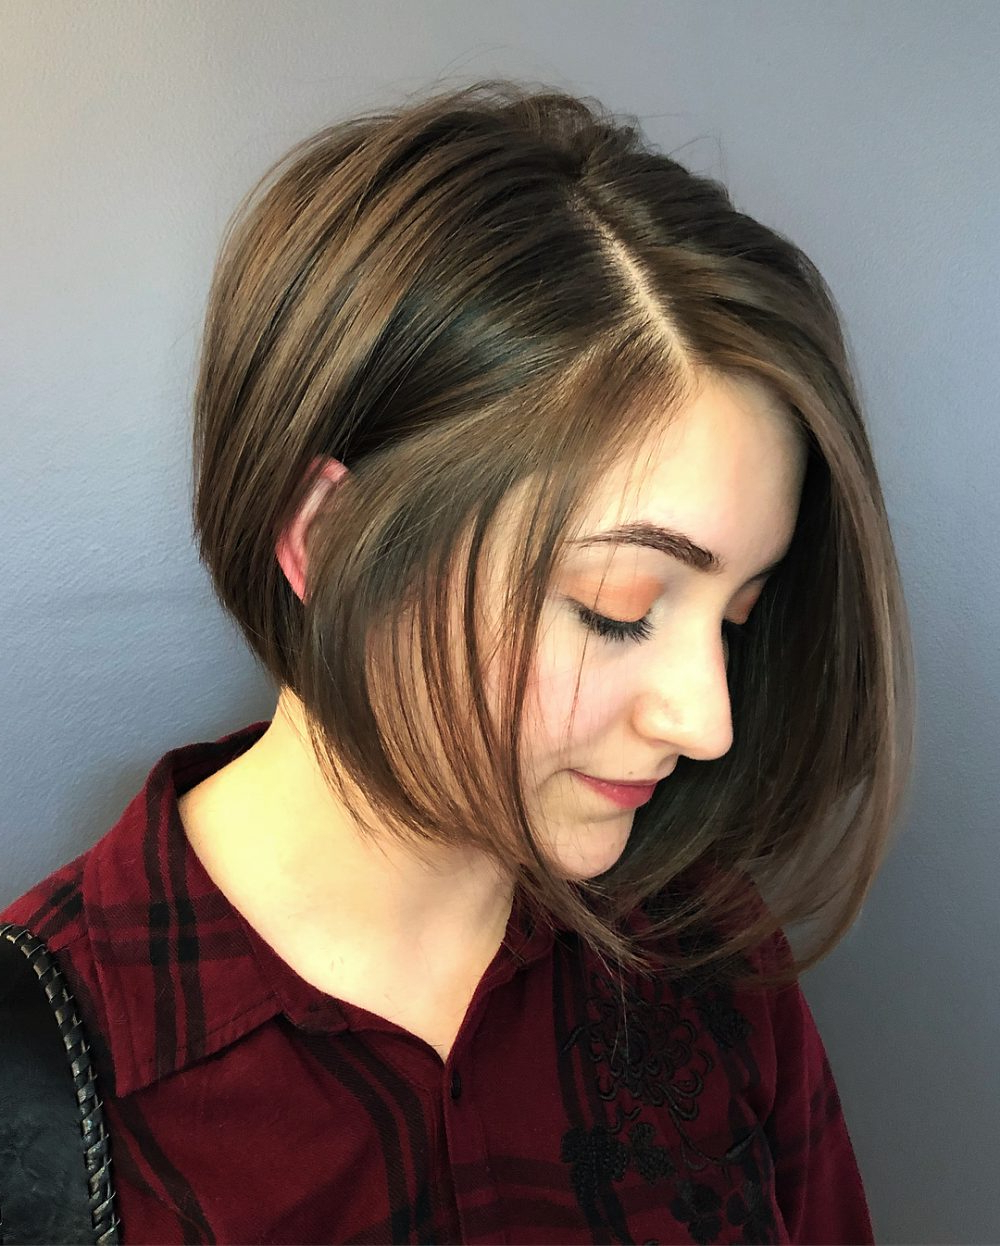 Medium Short Haircuts For Round Faces – Leymatson With Regard To Short To Medium Hairstyles For Round Faces (View 10 of 25)